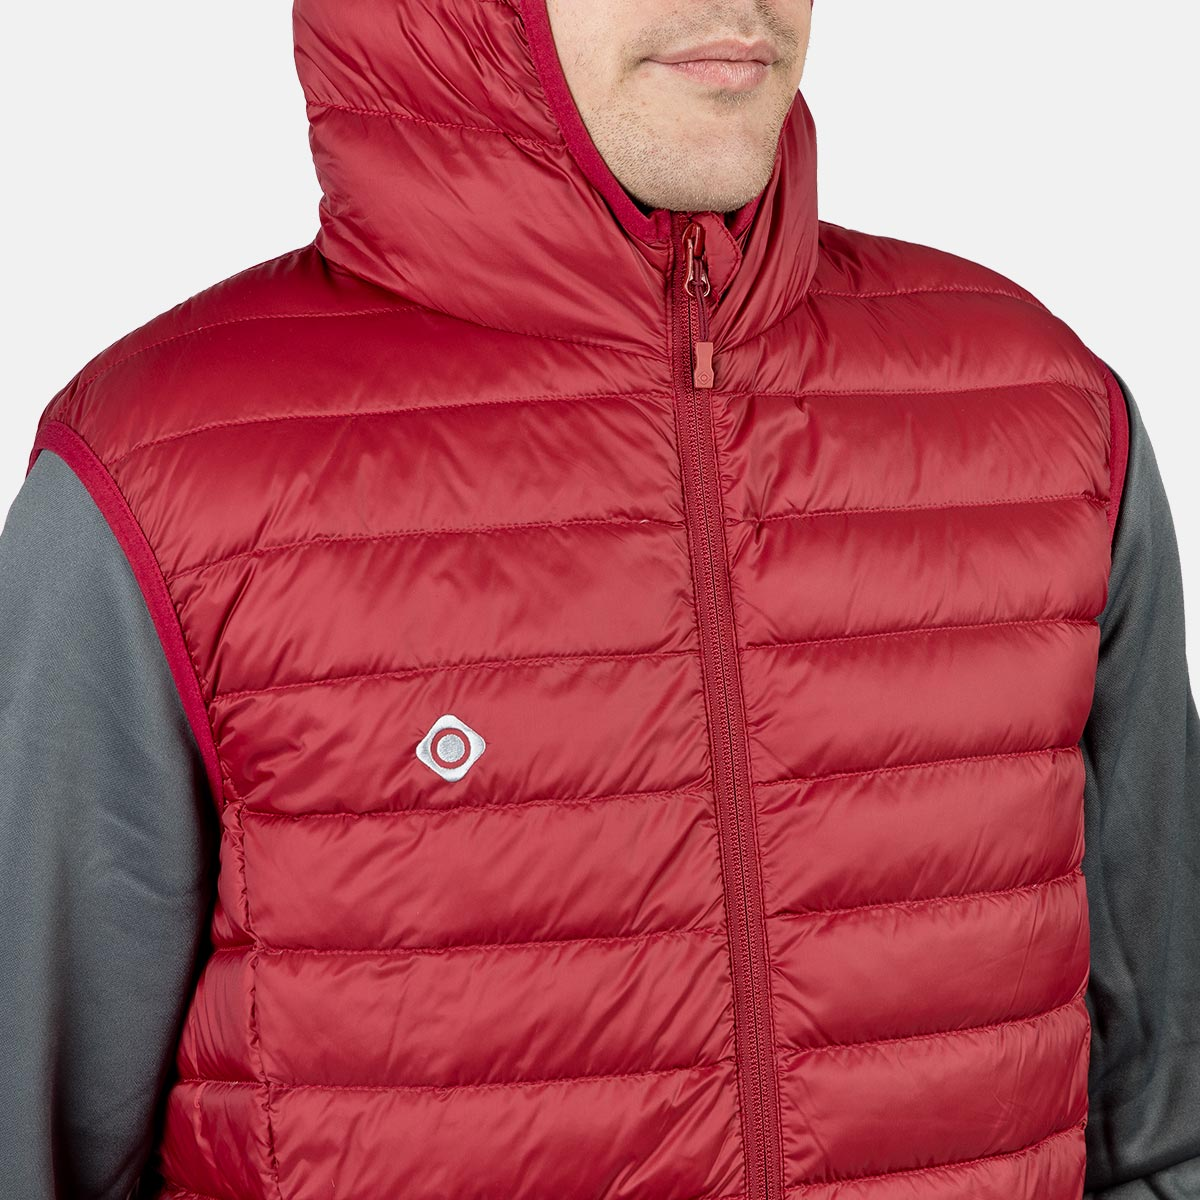 MAN'S SERENI DOWN VEST WITH HOOD RED